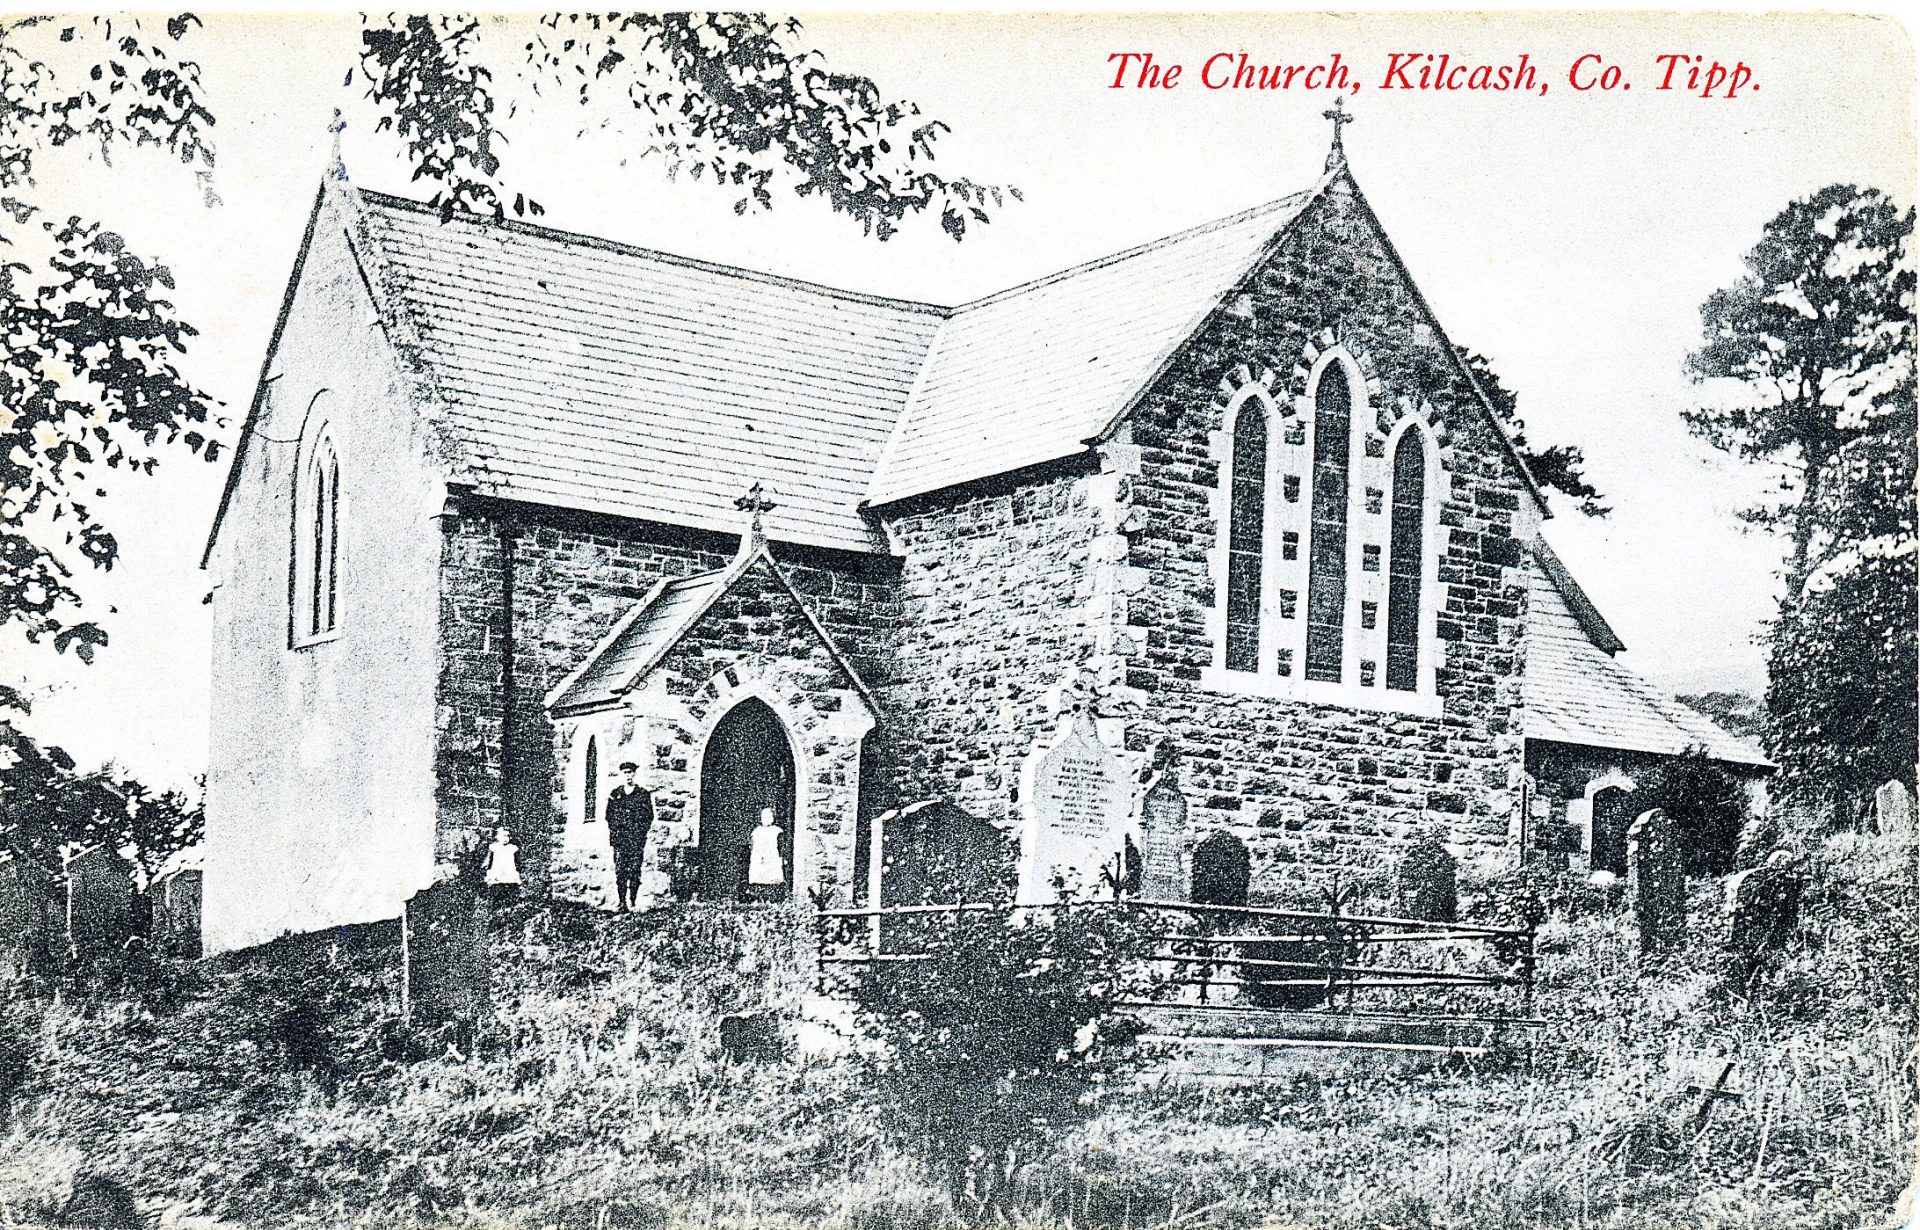 Kilcash church